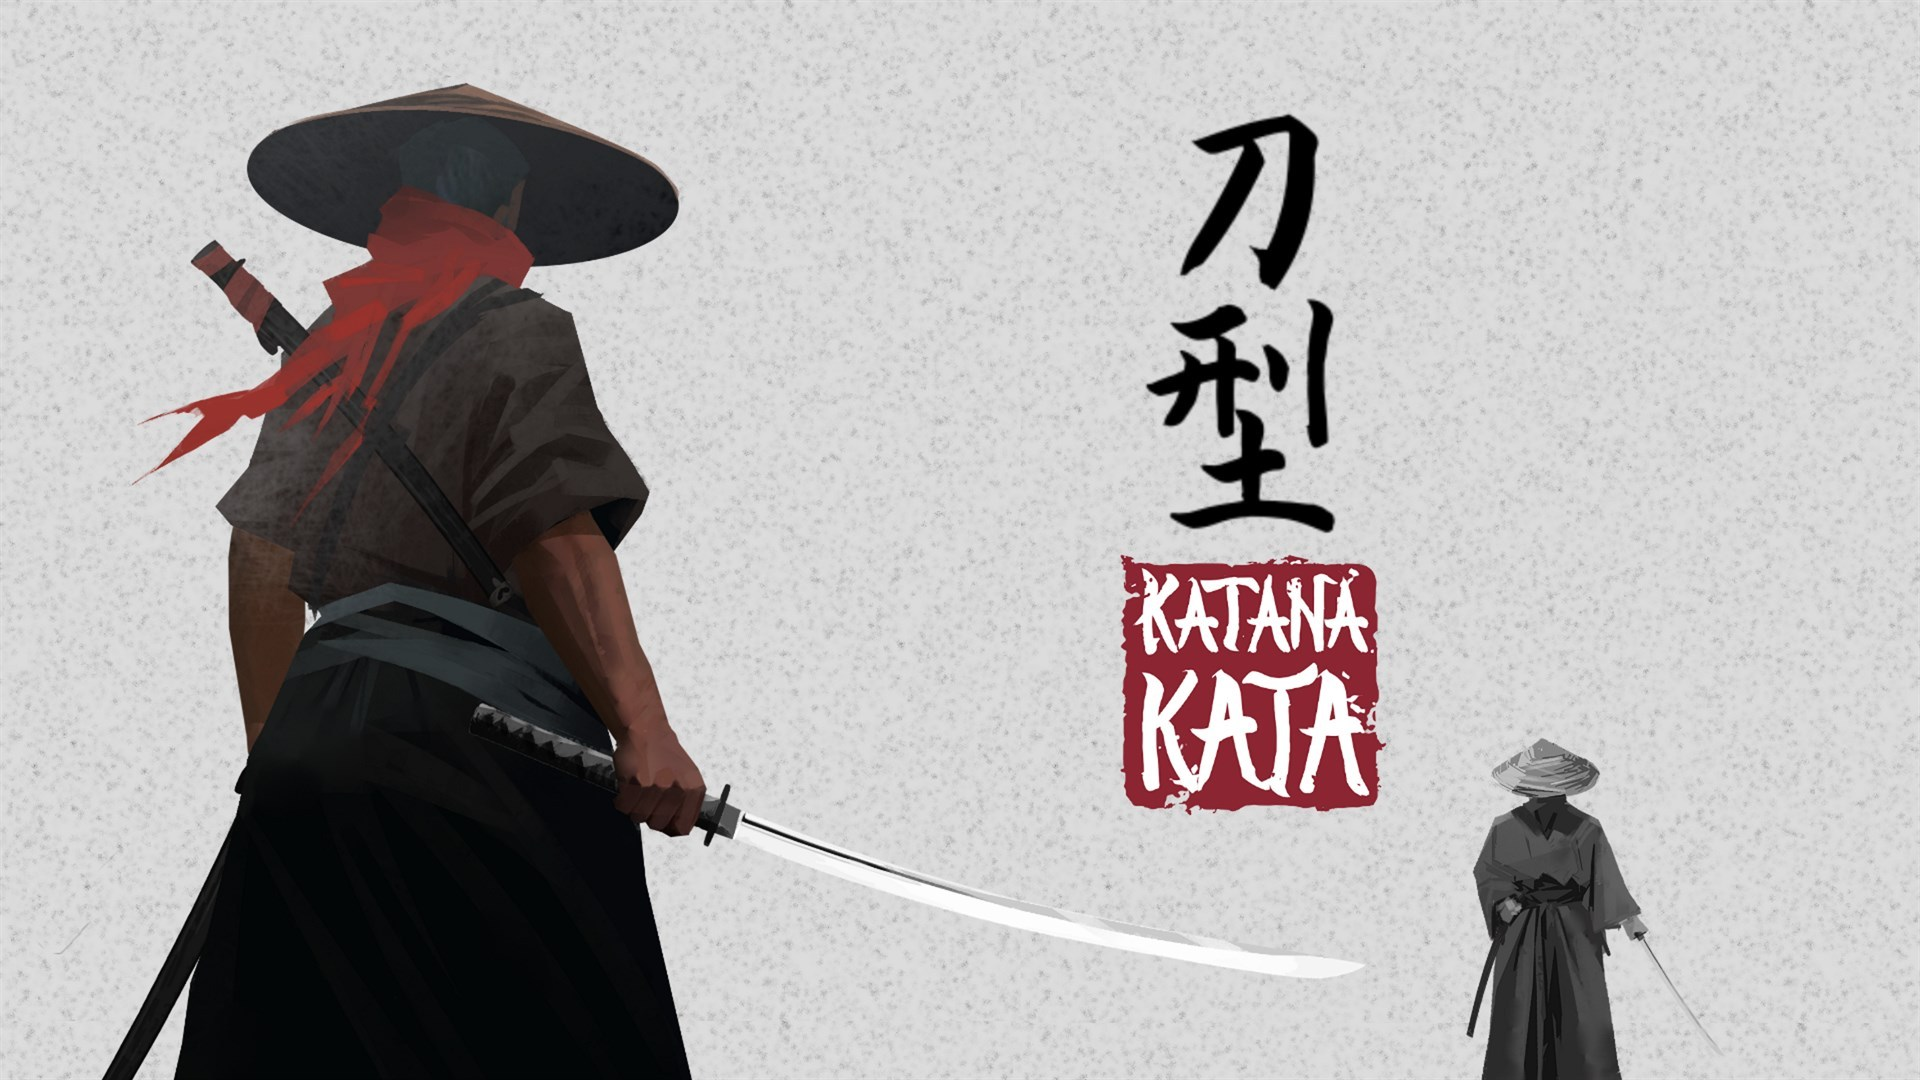 Katana Kata Is Now Available For Digital Pre-order And Pre-download On Xbox One And Xbox Series X|S 1